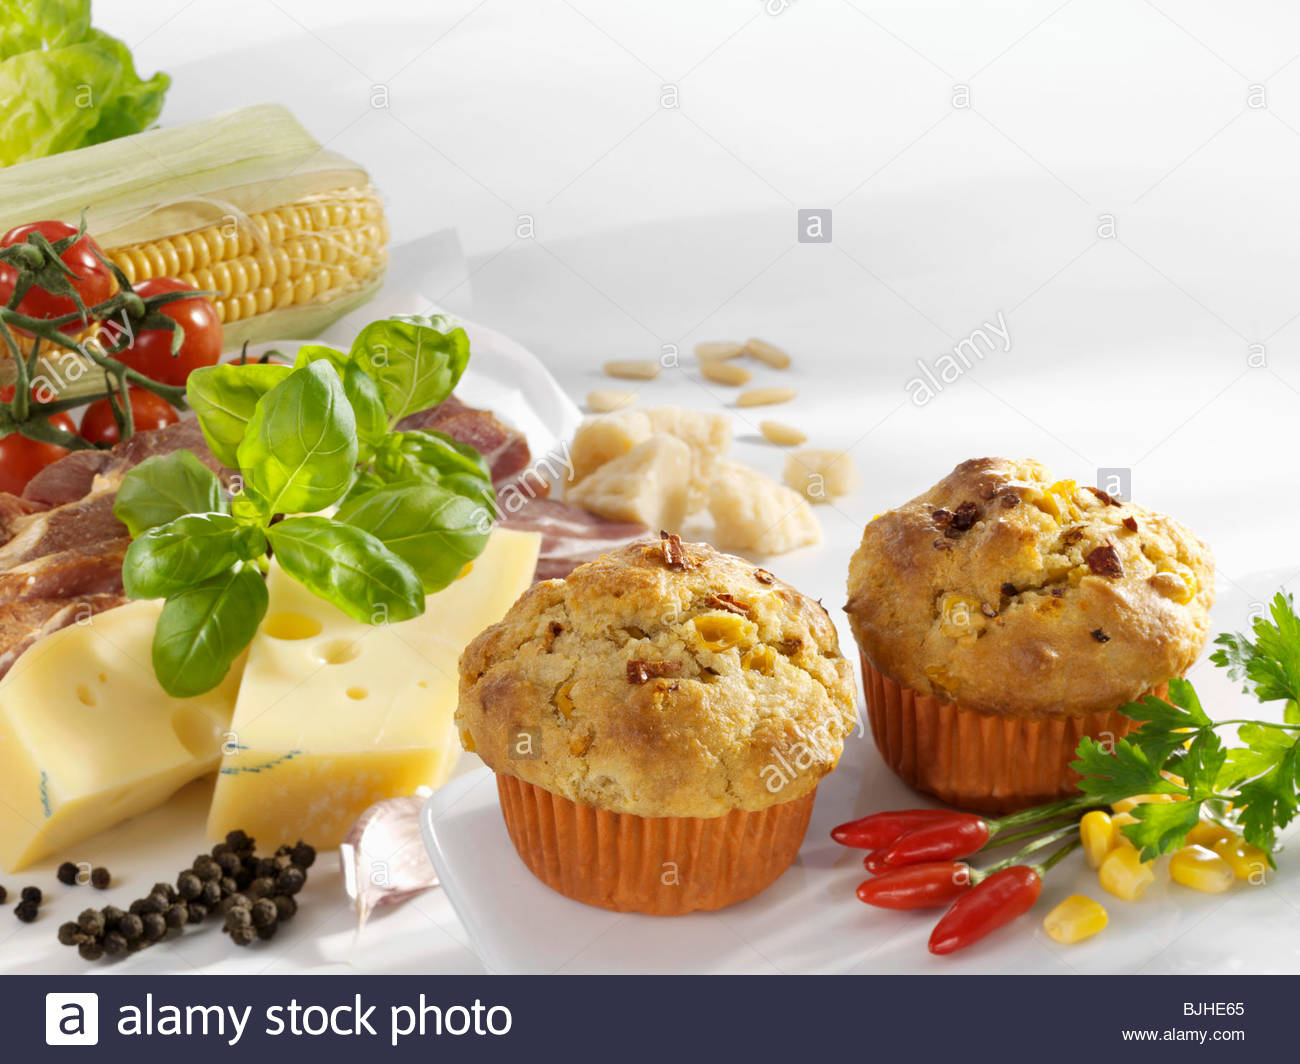 Hearty muffins, surrounded by ingredients - Stock Image